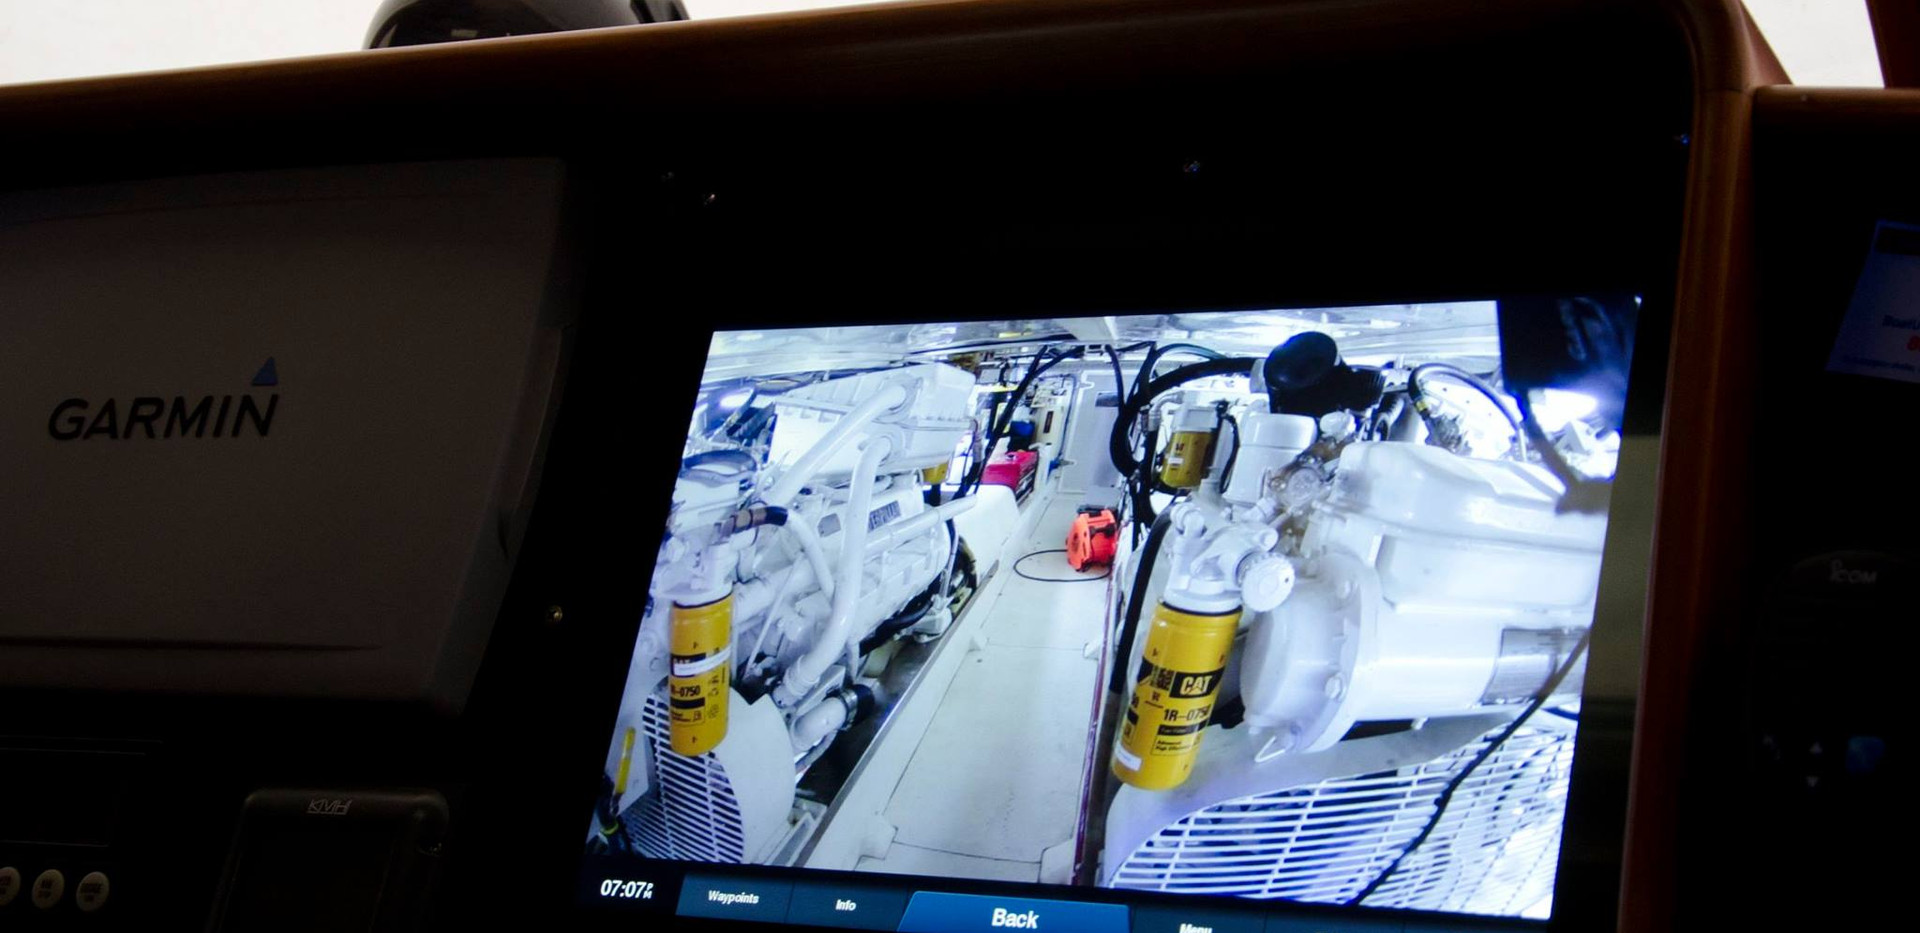 """Engine room camera on the Garmin display 55 Fleming, """"Our Eden""""."""